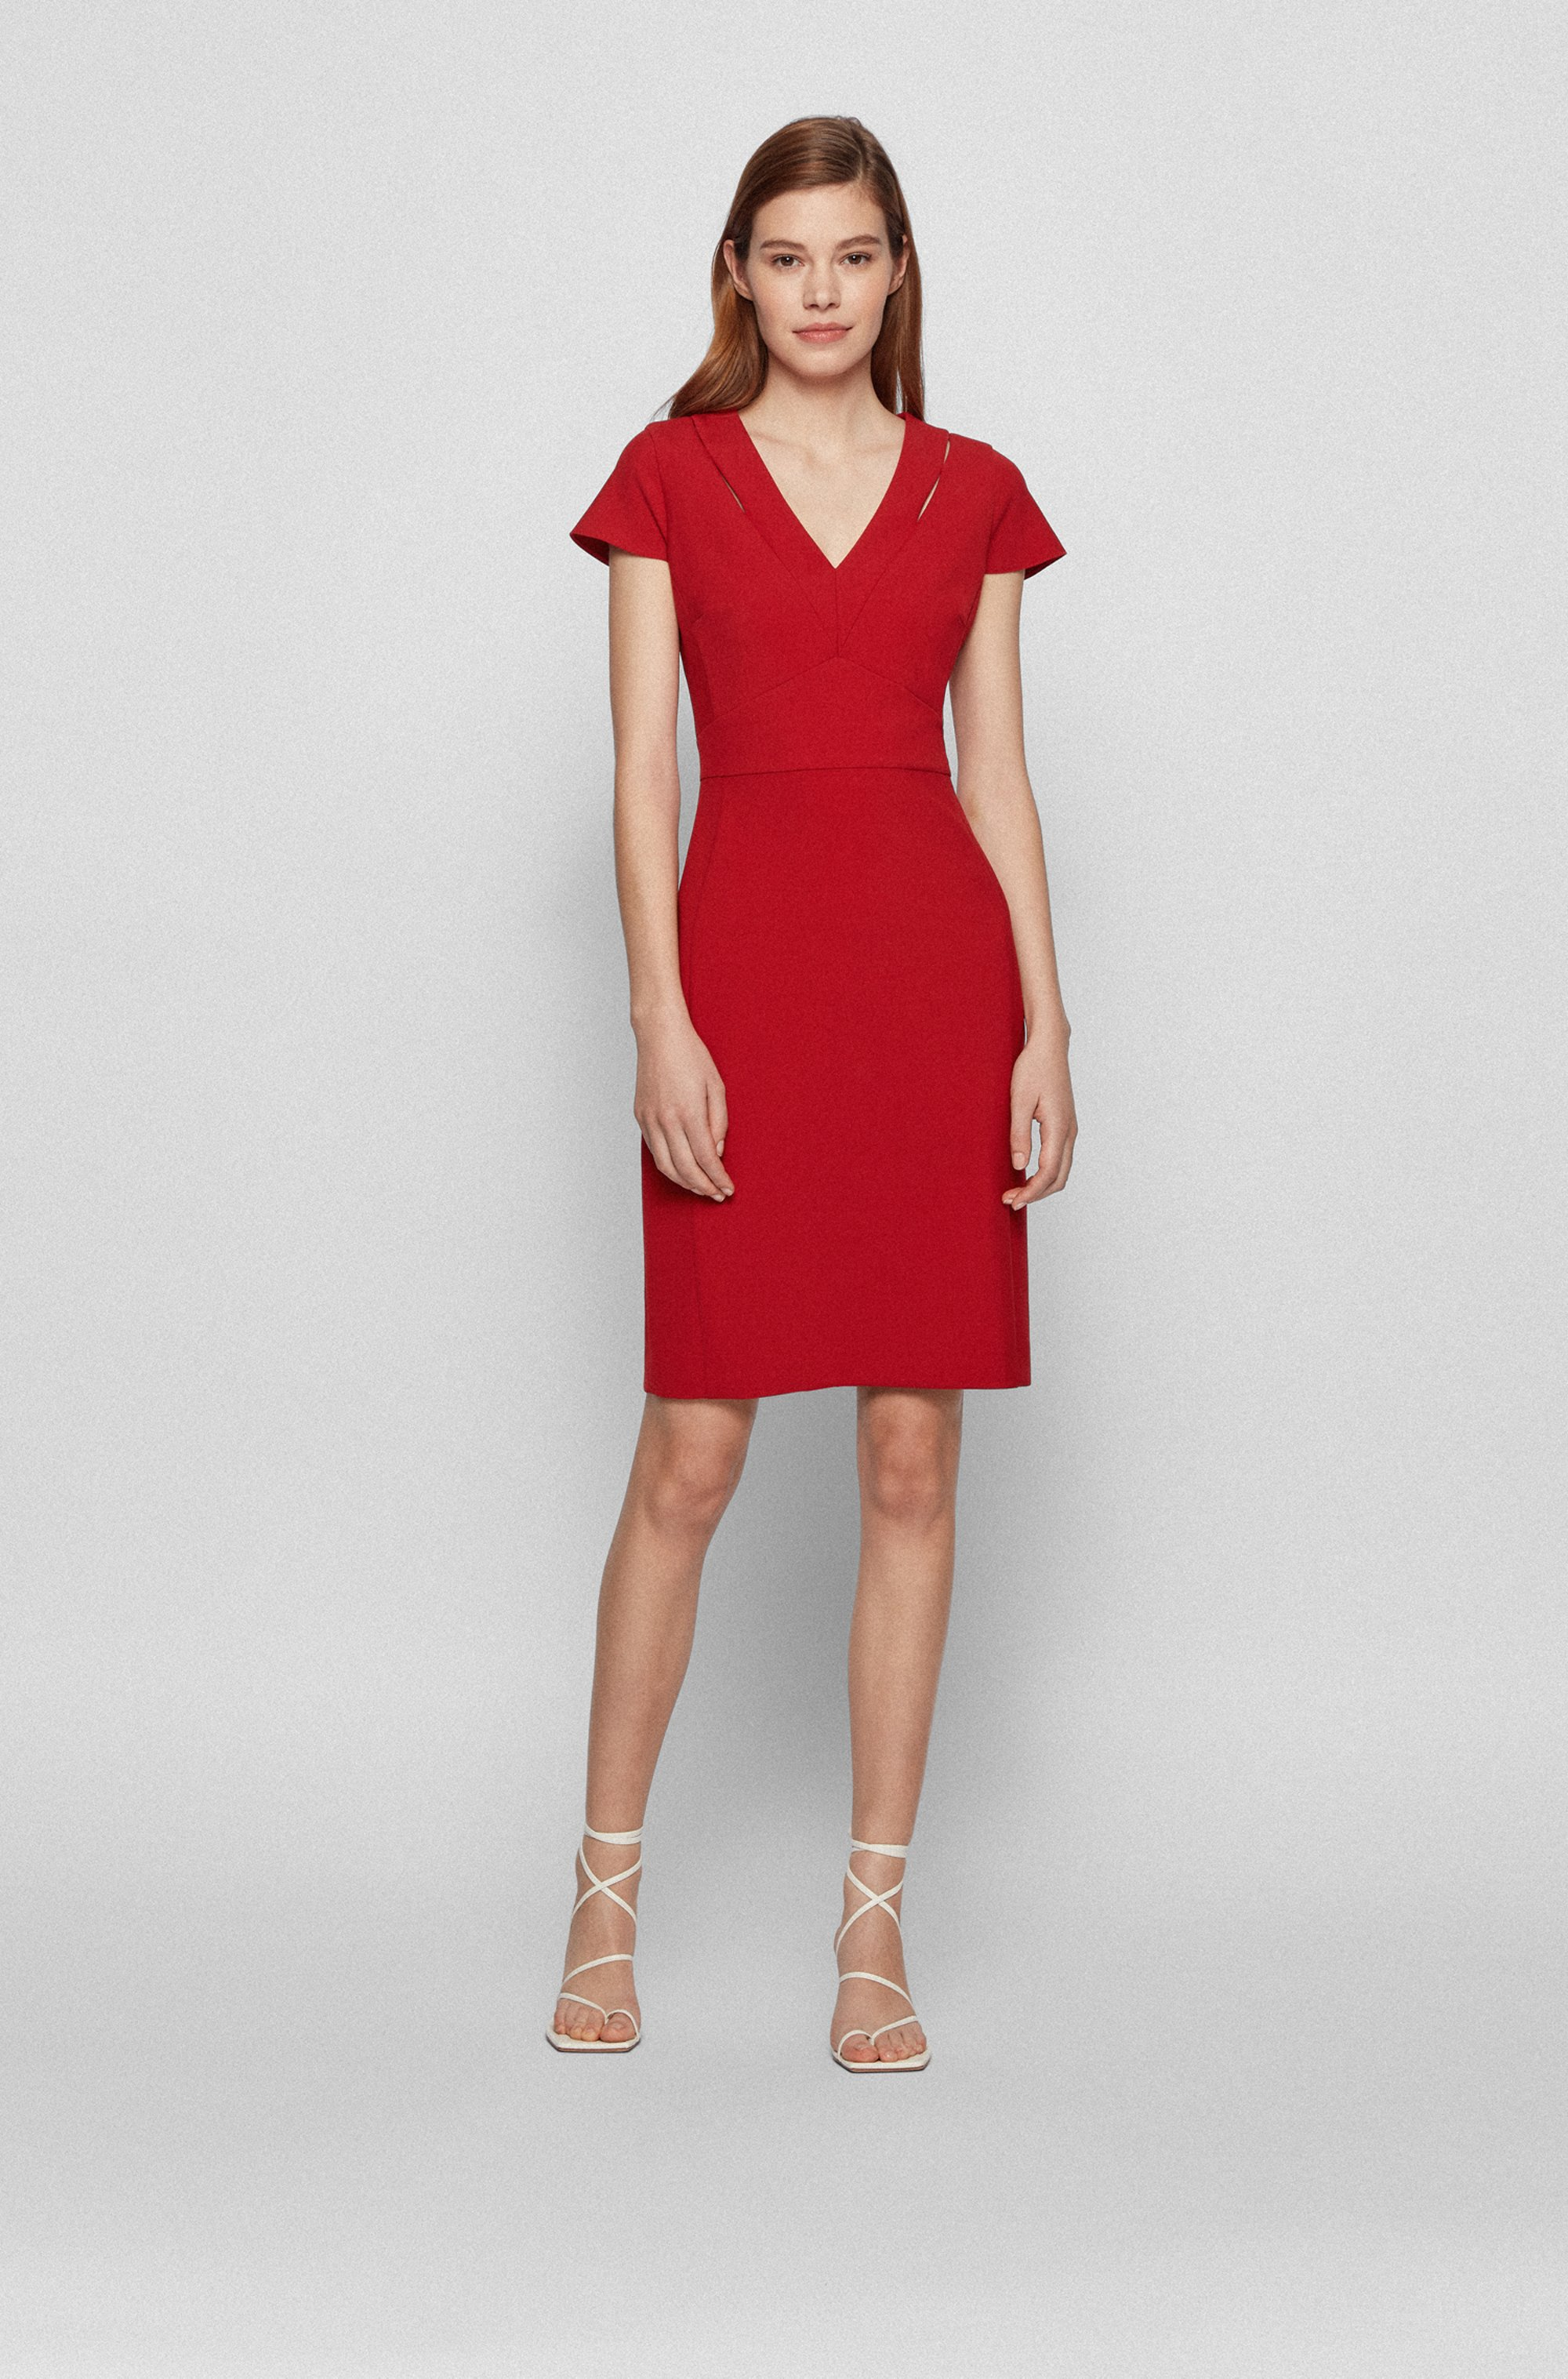 V-neck shift dress in double-faced stretch fabric